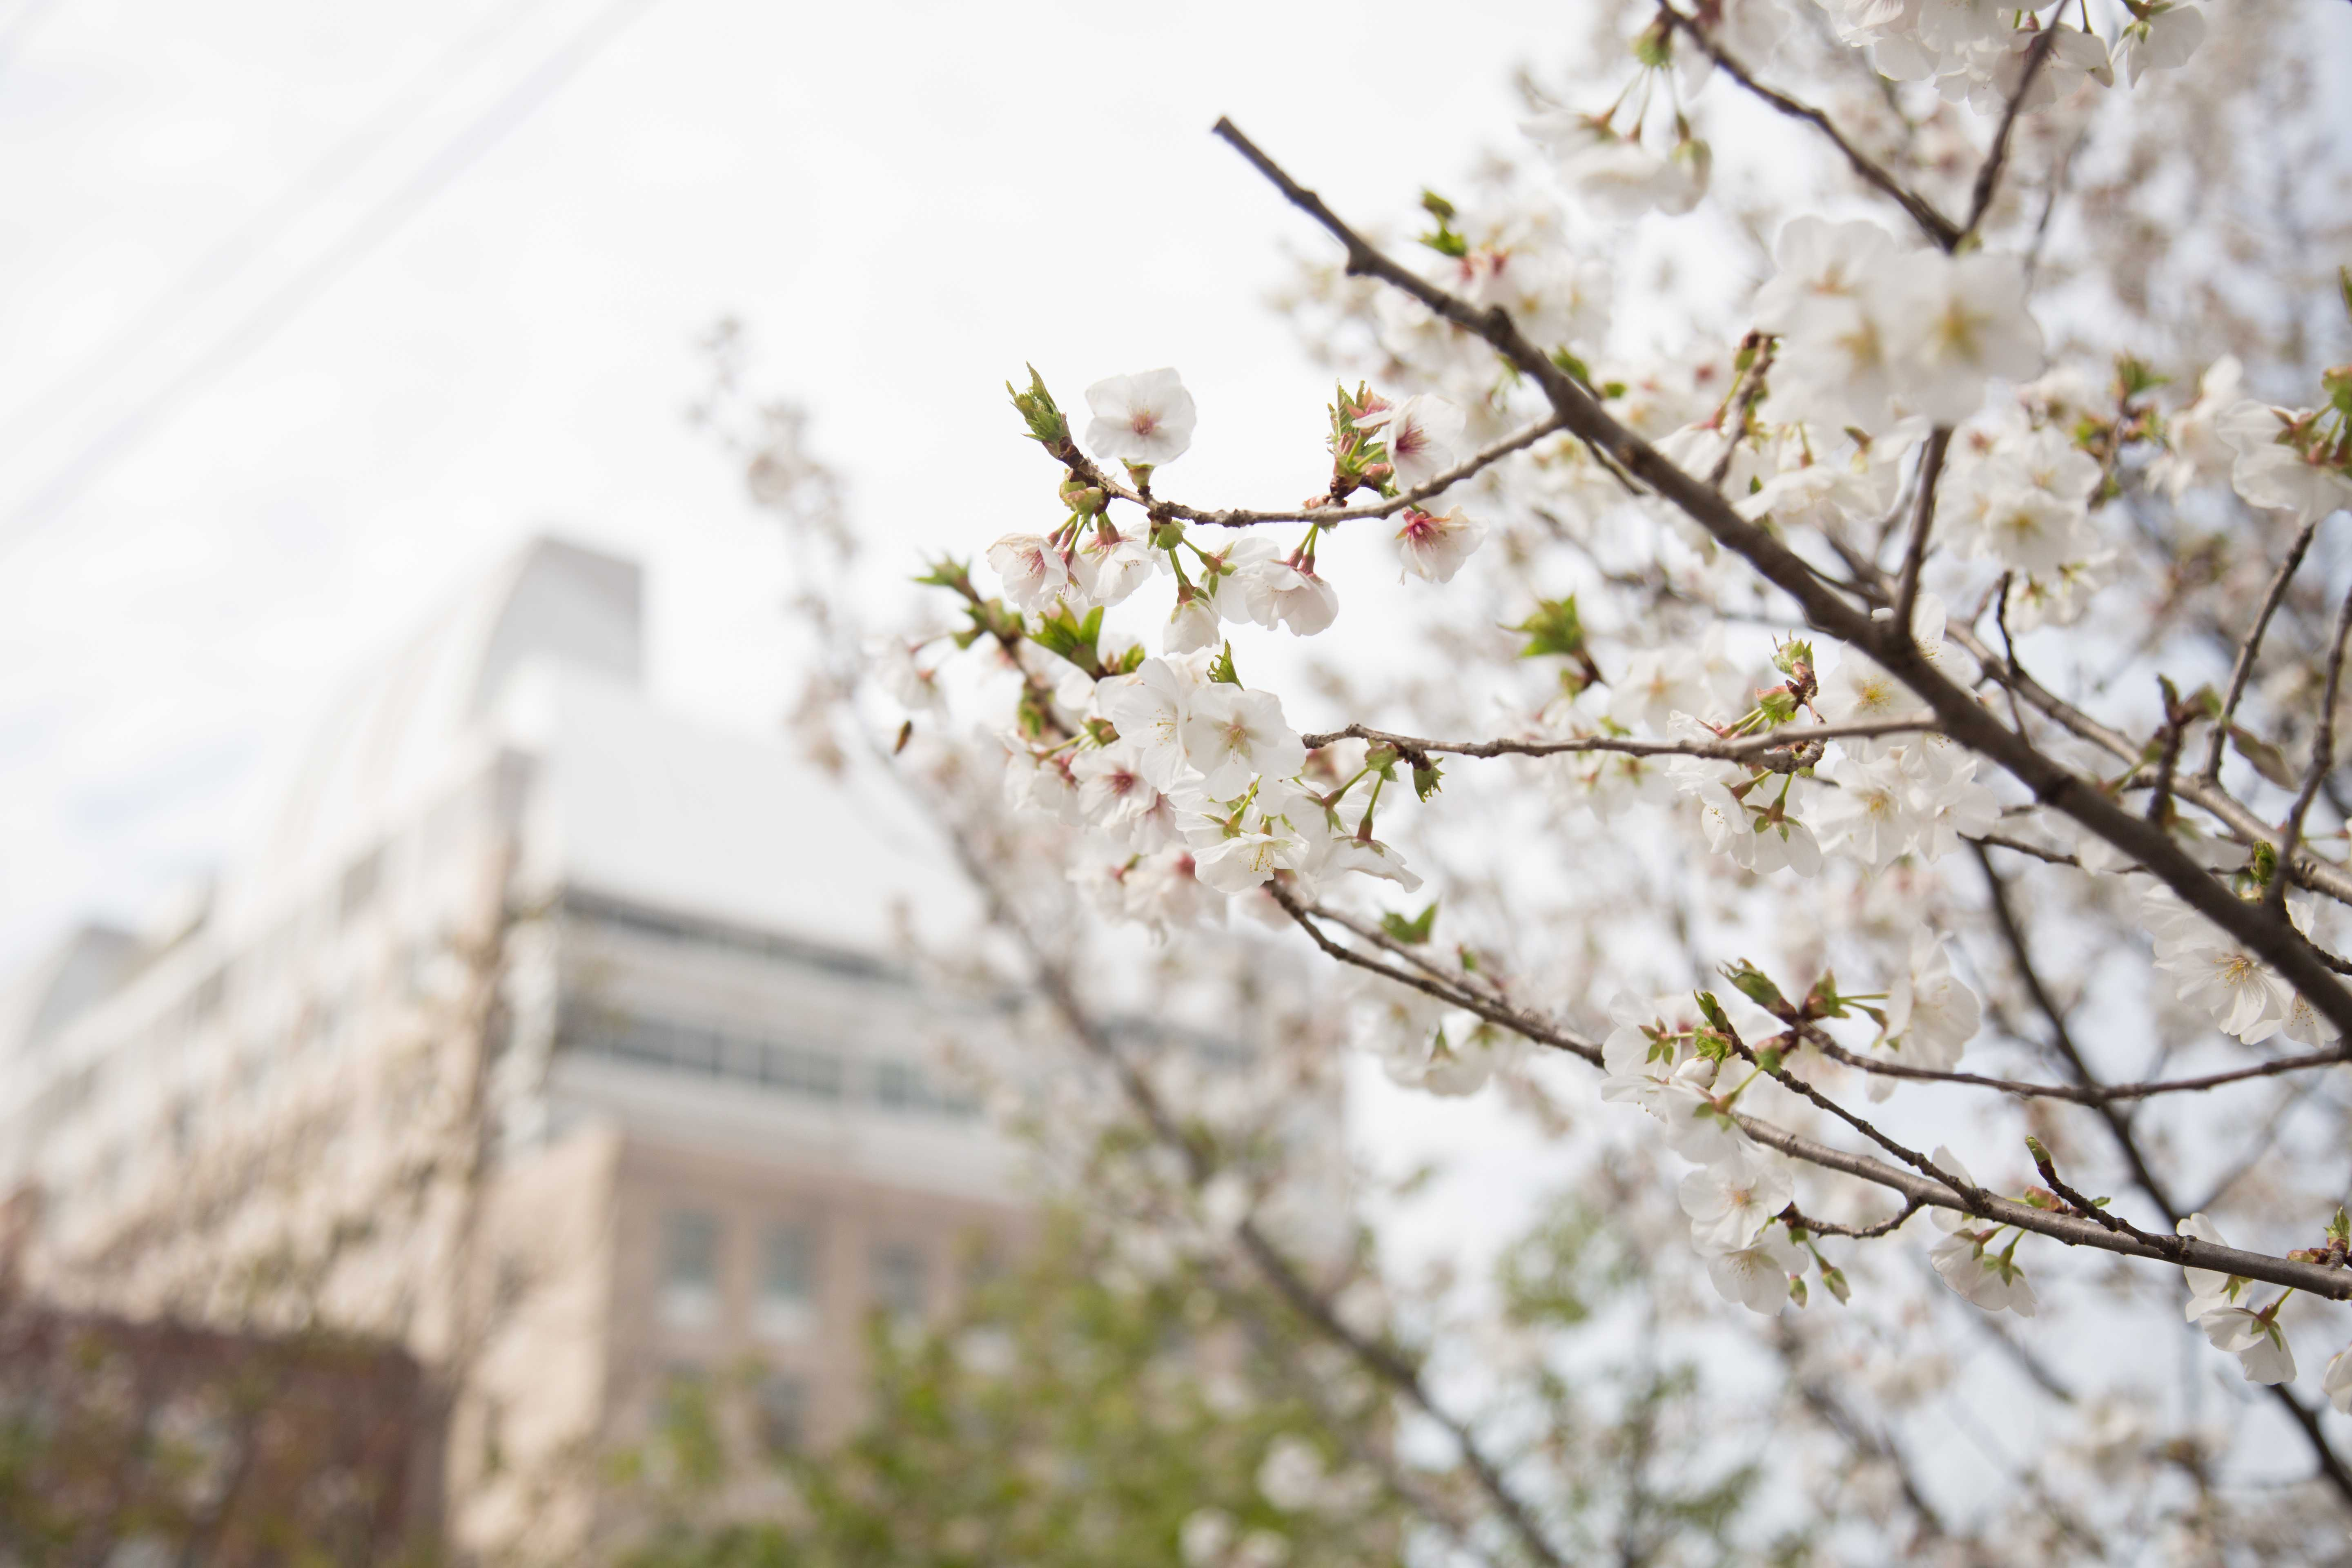 Spring at Vanderbilt. Flower blossom, taken on Friday, March 16, 2018. (Photo by Claire Barnett)